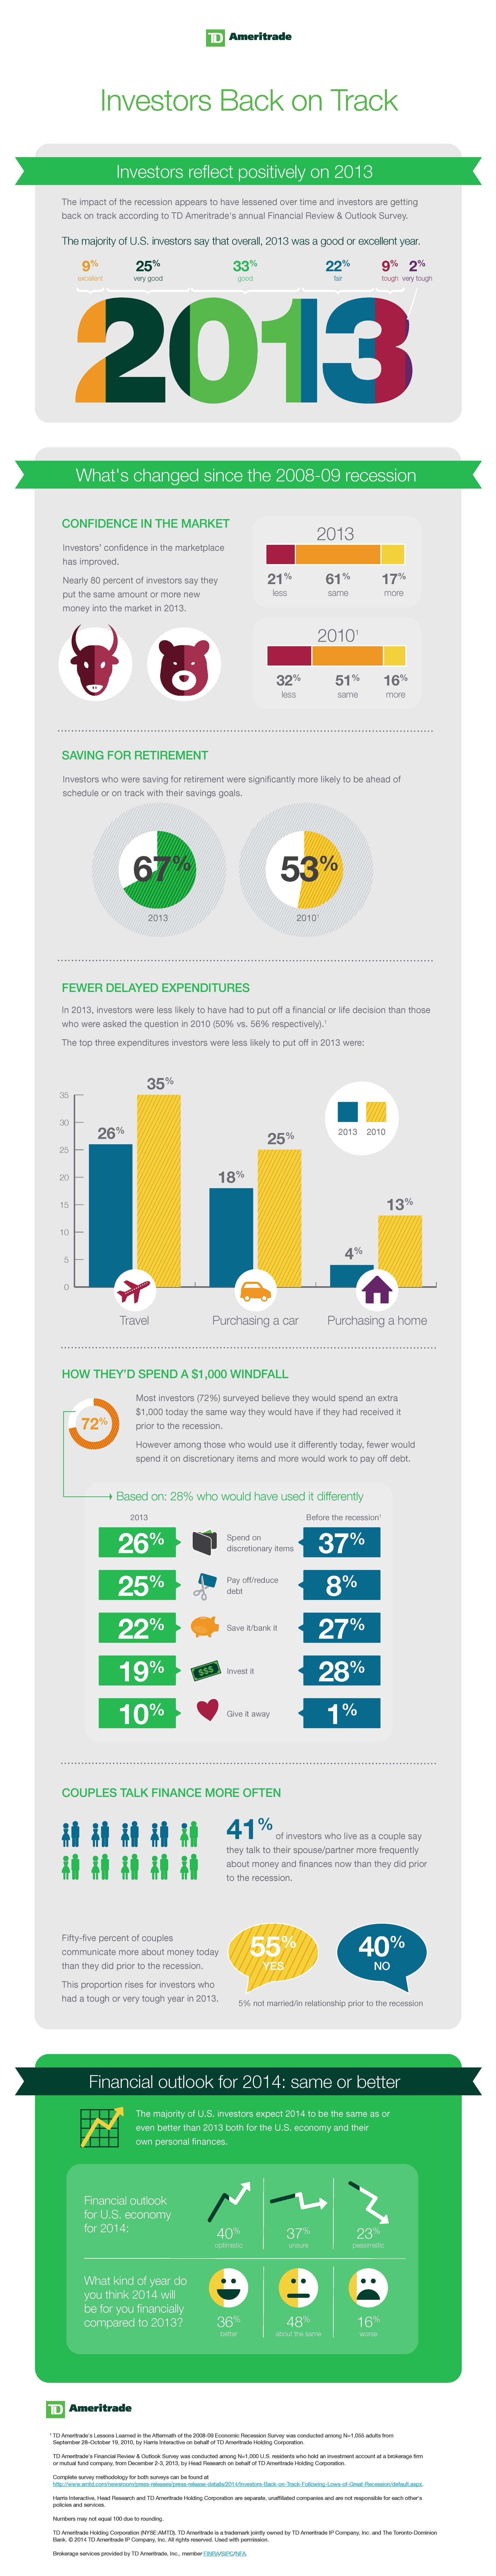 TD Ameritrade Financial Review & Outlook Survey: Investors Back on Track (Graphic: TD Ameritrade)